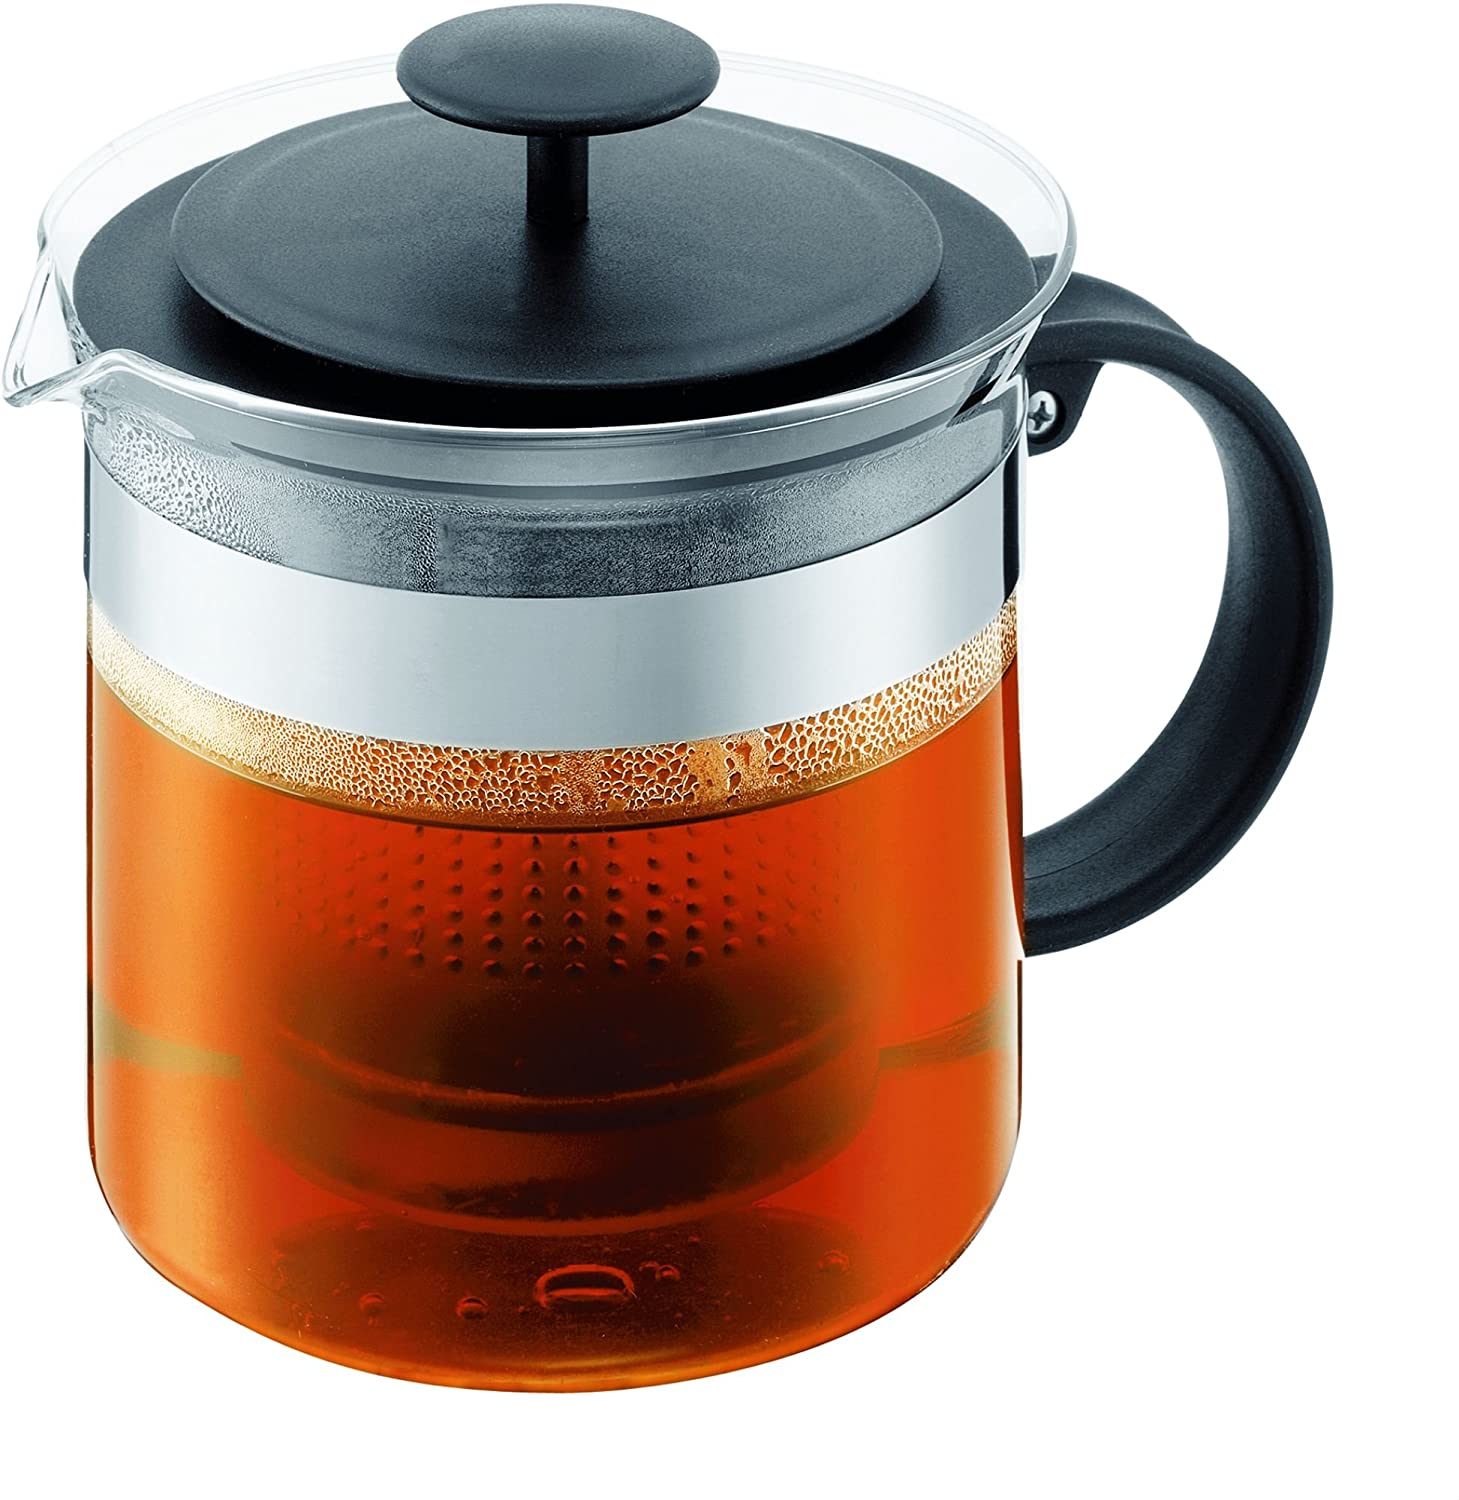 Bodum Bistro Nouveau Tea Press, Borosilicate Glass, Plastic Infuser - 1.5 L, Black 1880-01